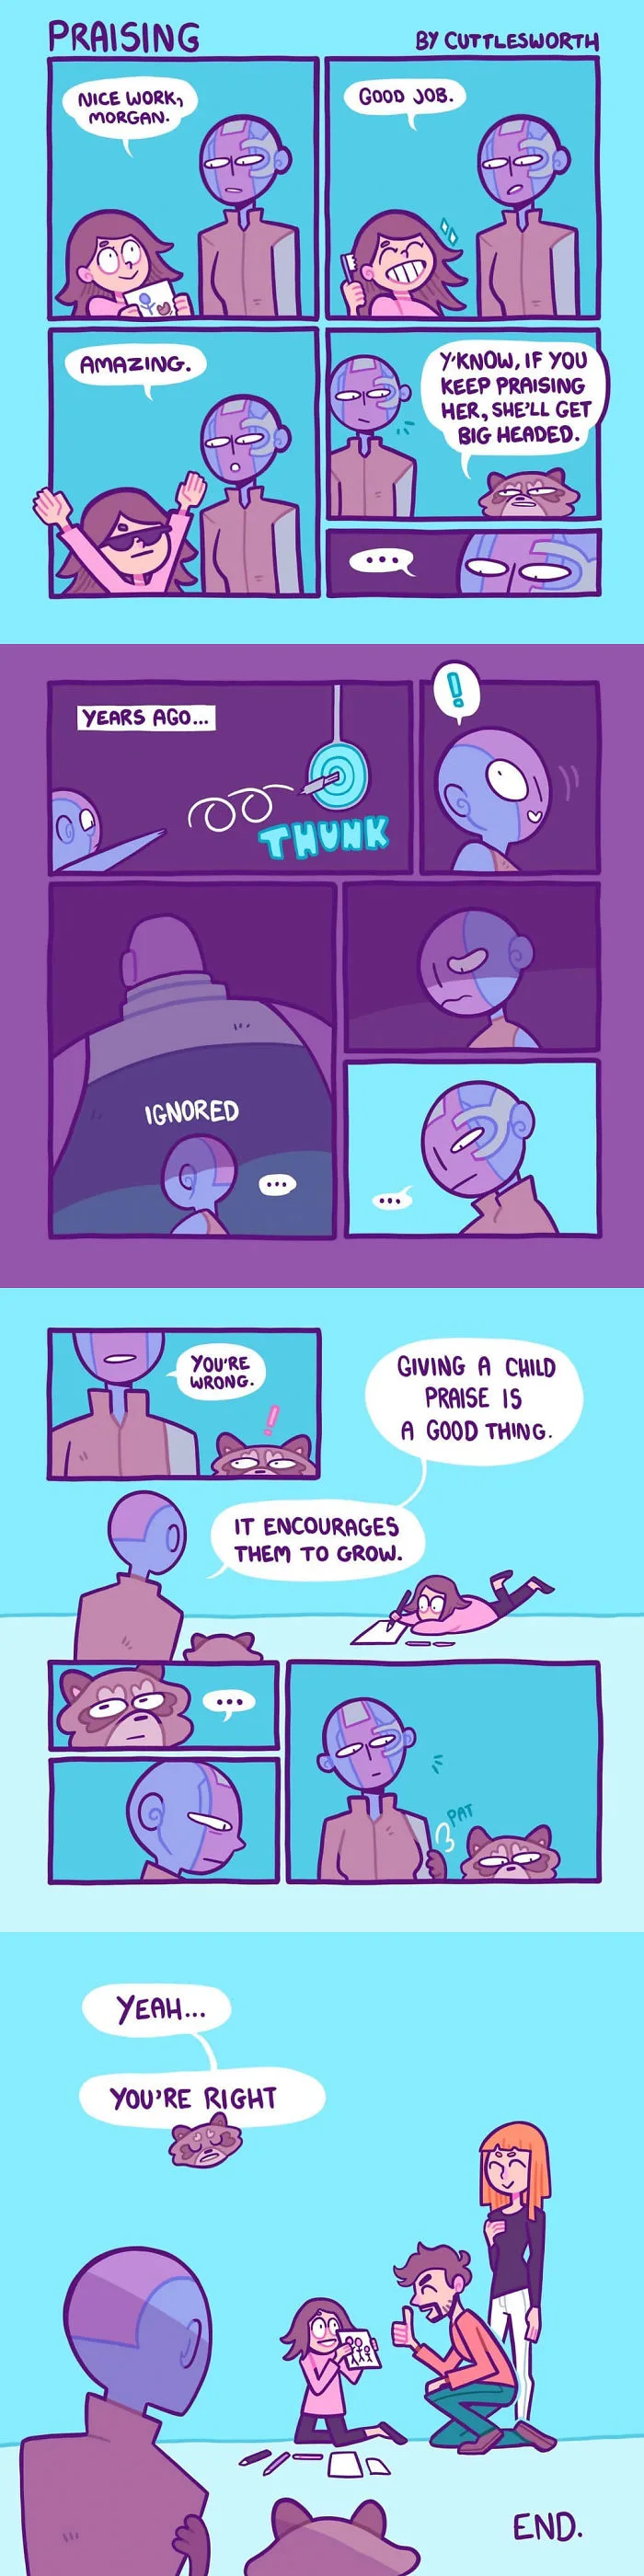 Nebula Deals With Everyday Life In Cute Comic Series Marvel Superheroes Cute Comics Marvel